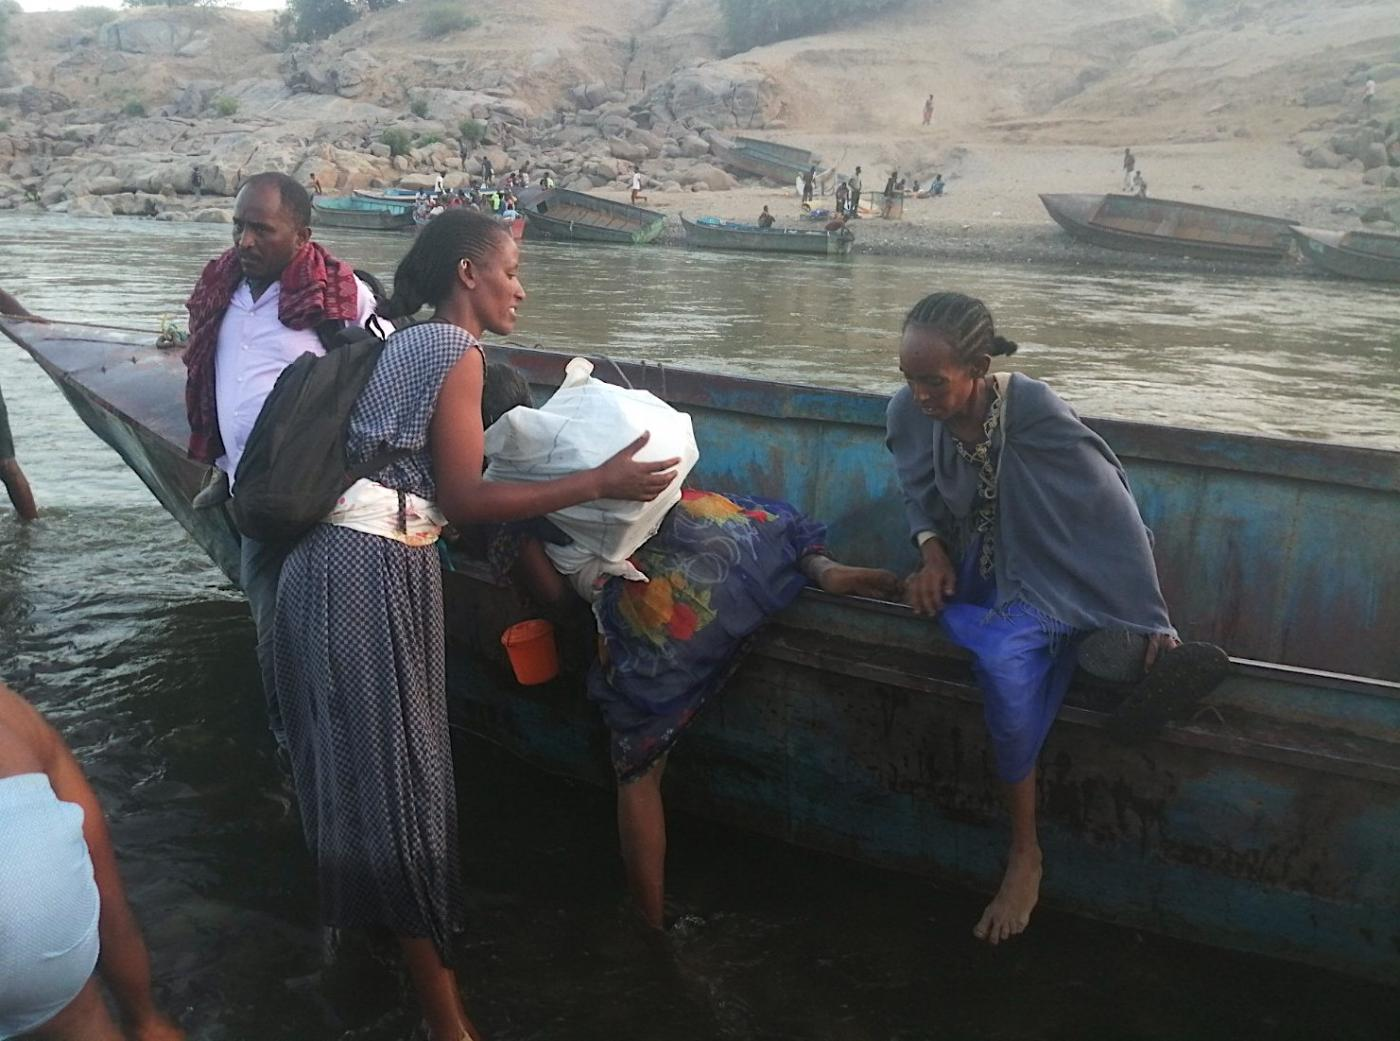 Ethiopian refugees arrive by boat into Sudan